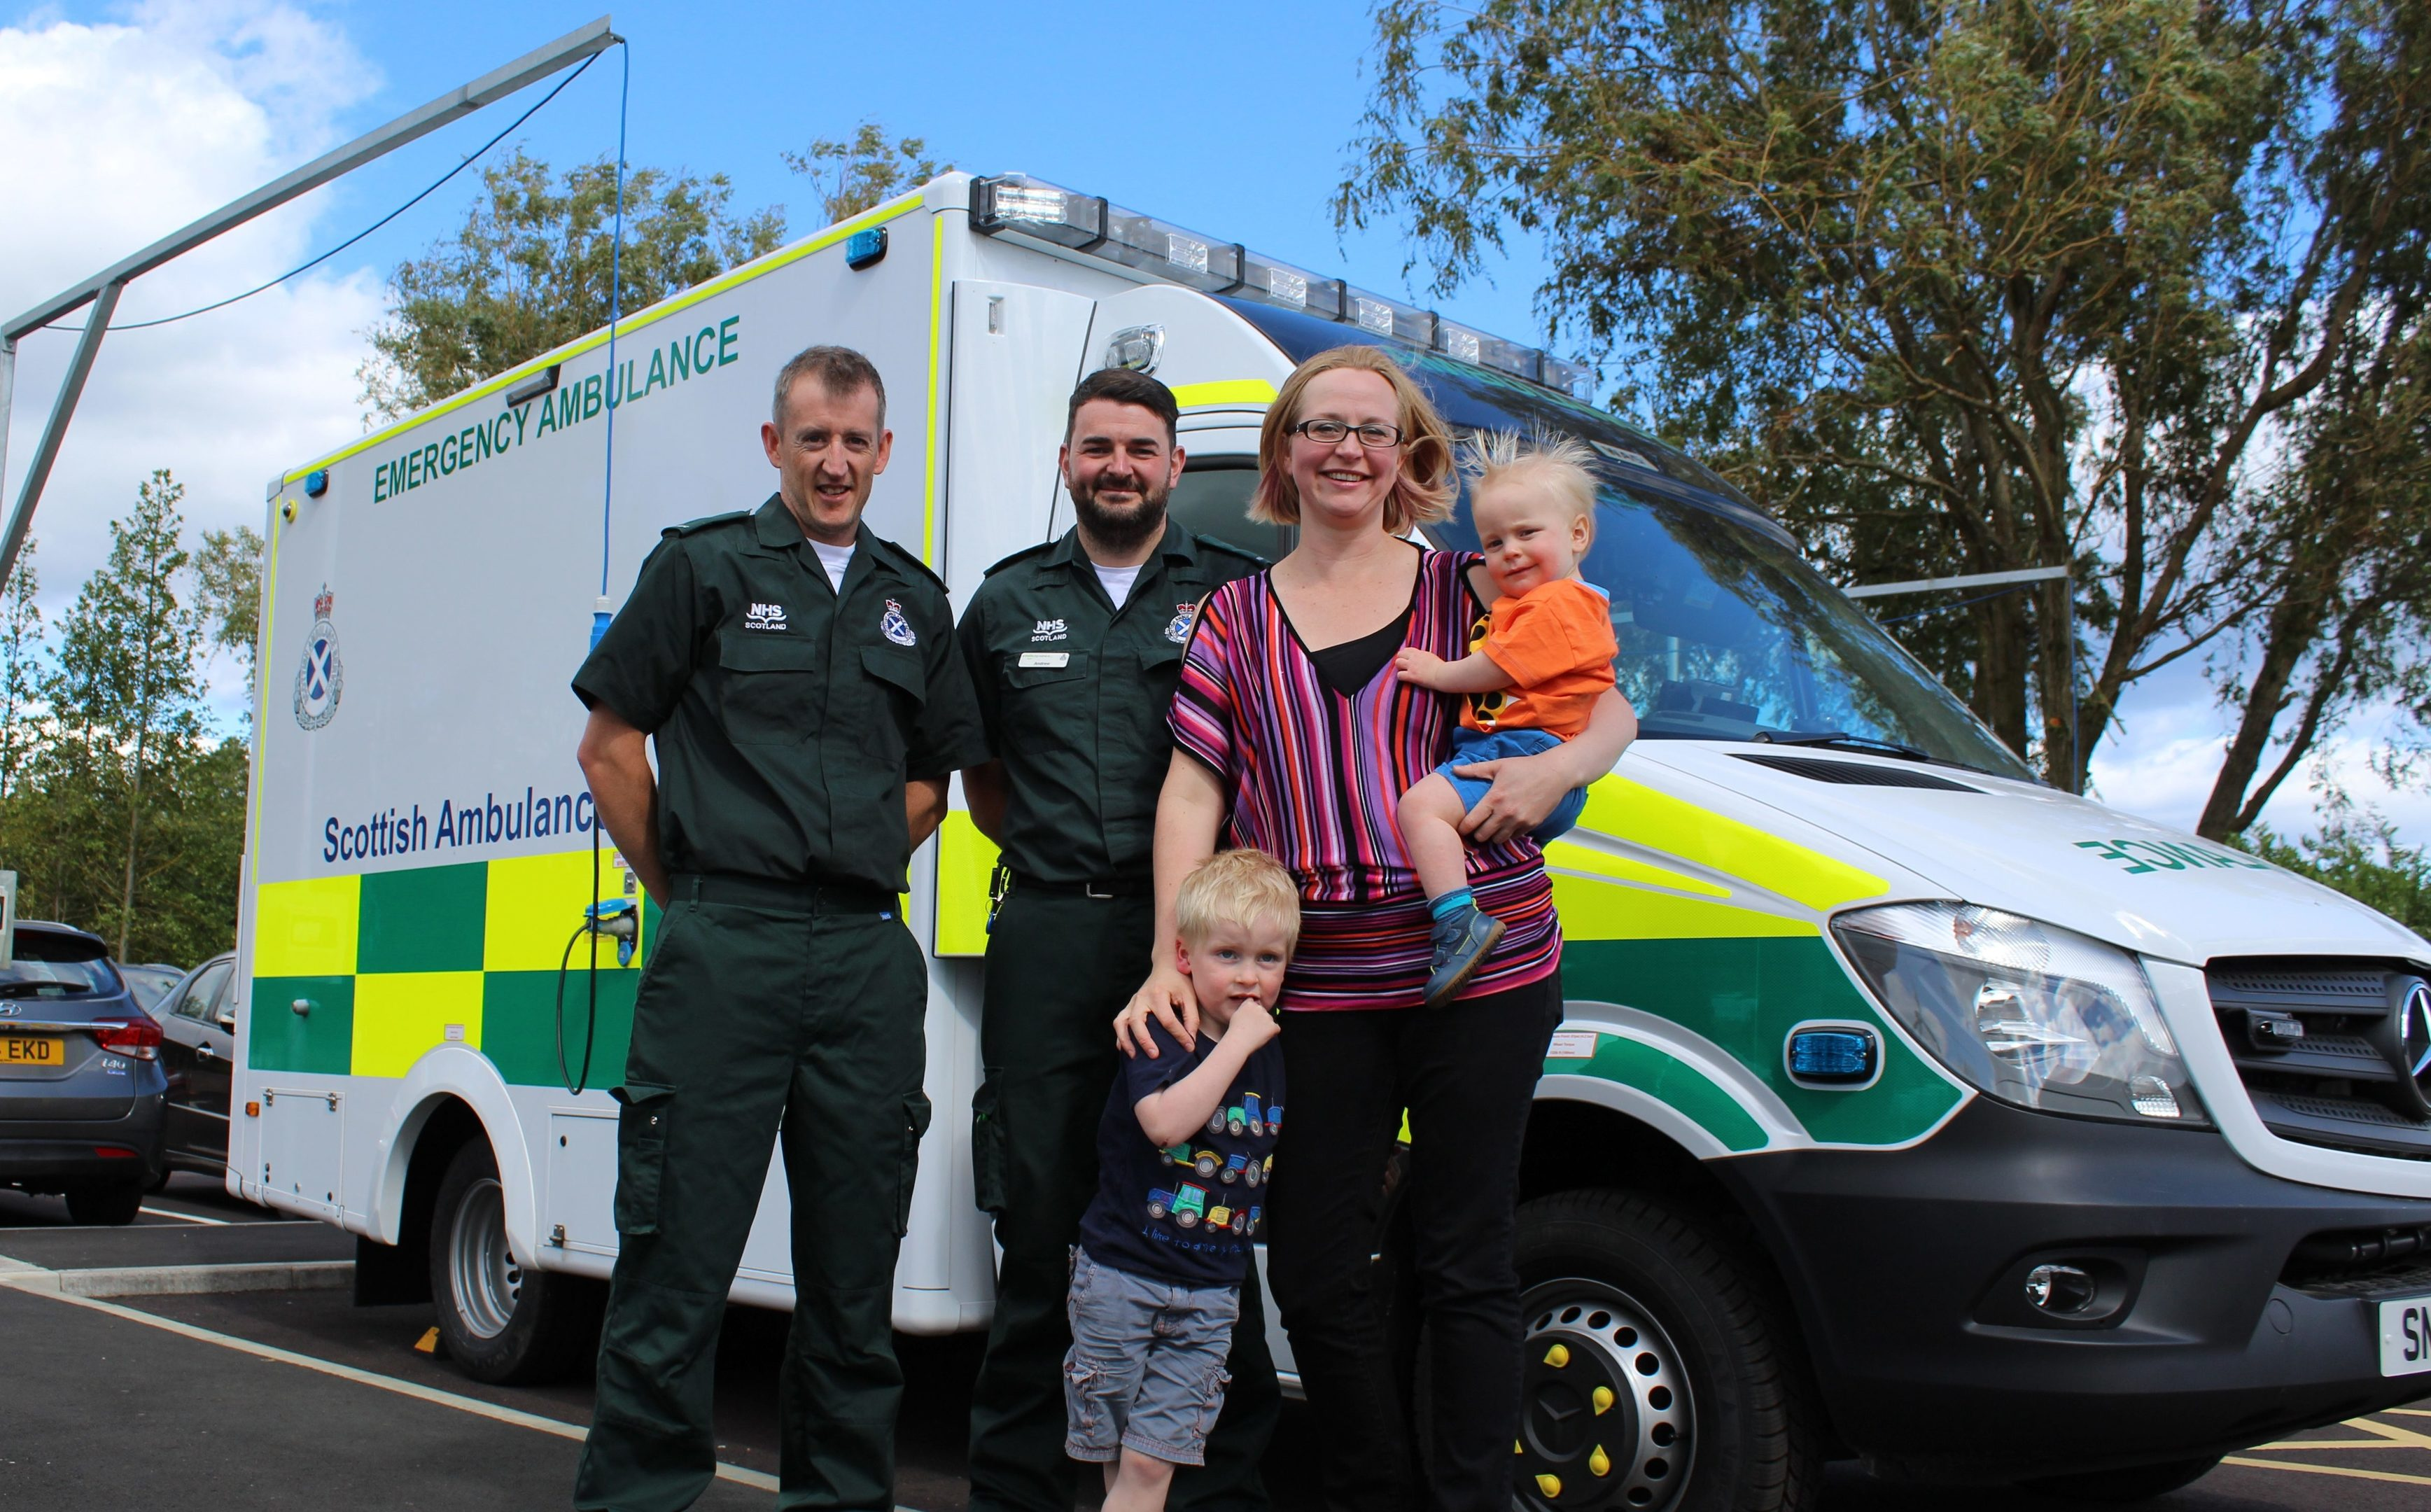 Keryn with sons, Torin, 3,and Keldan, 15 months, with Richard Garside, left, and Andrew Paterson